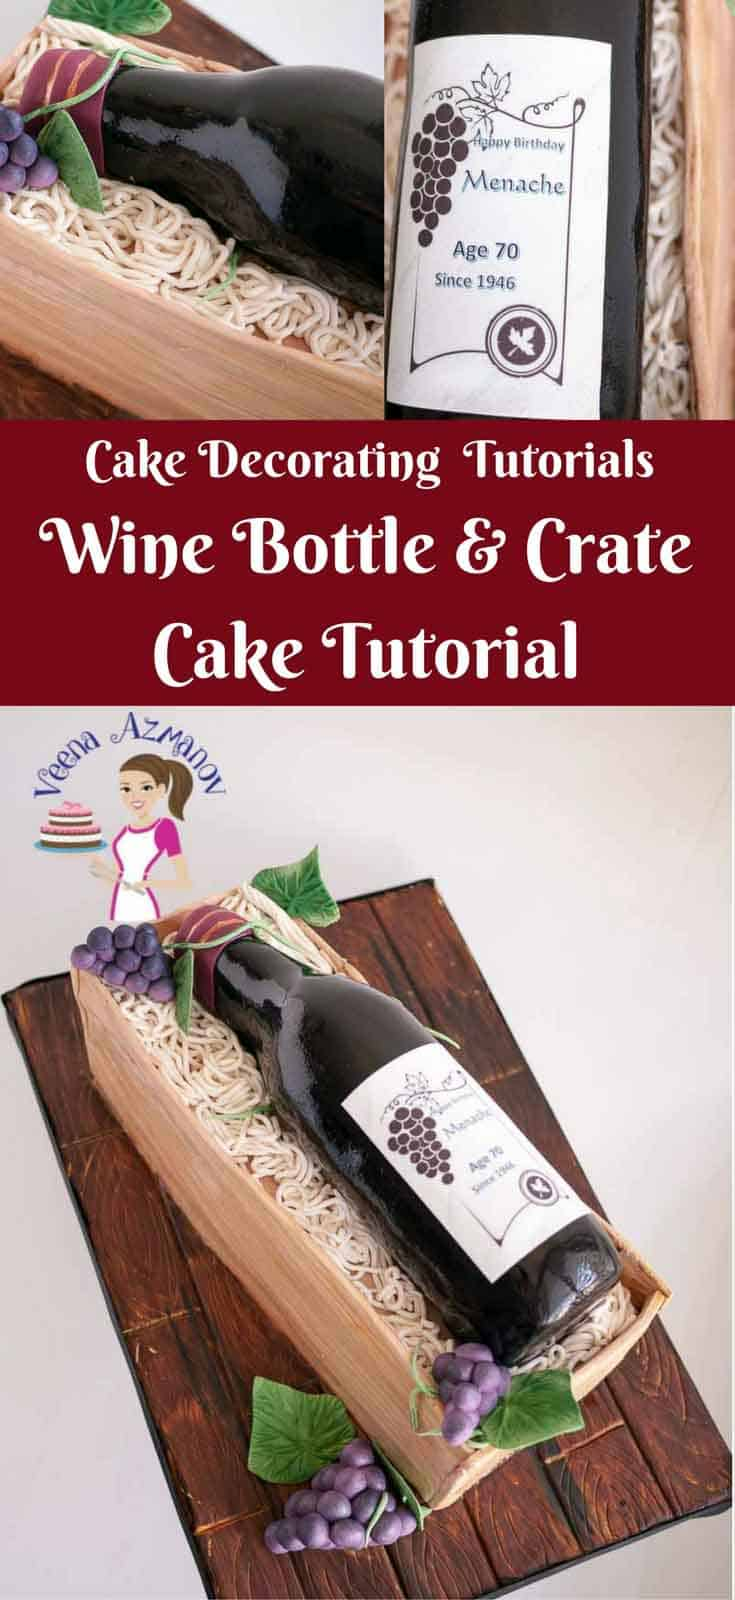 A wine bottle and crate cake can be a fun gift for a man or woman. Very sophisticated and elegant yet very similar to the real thing. This tutorial show you how easy and achievable it is to create this cake from start to finish.